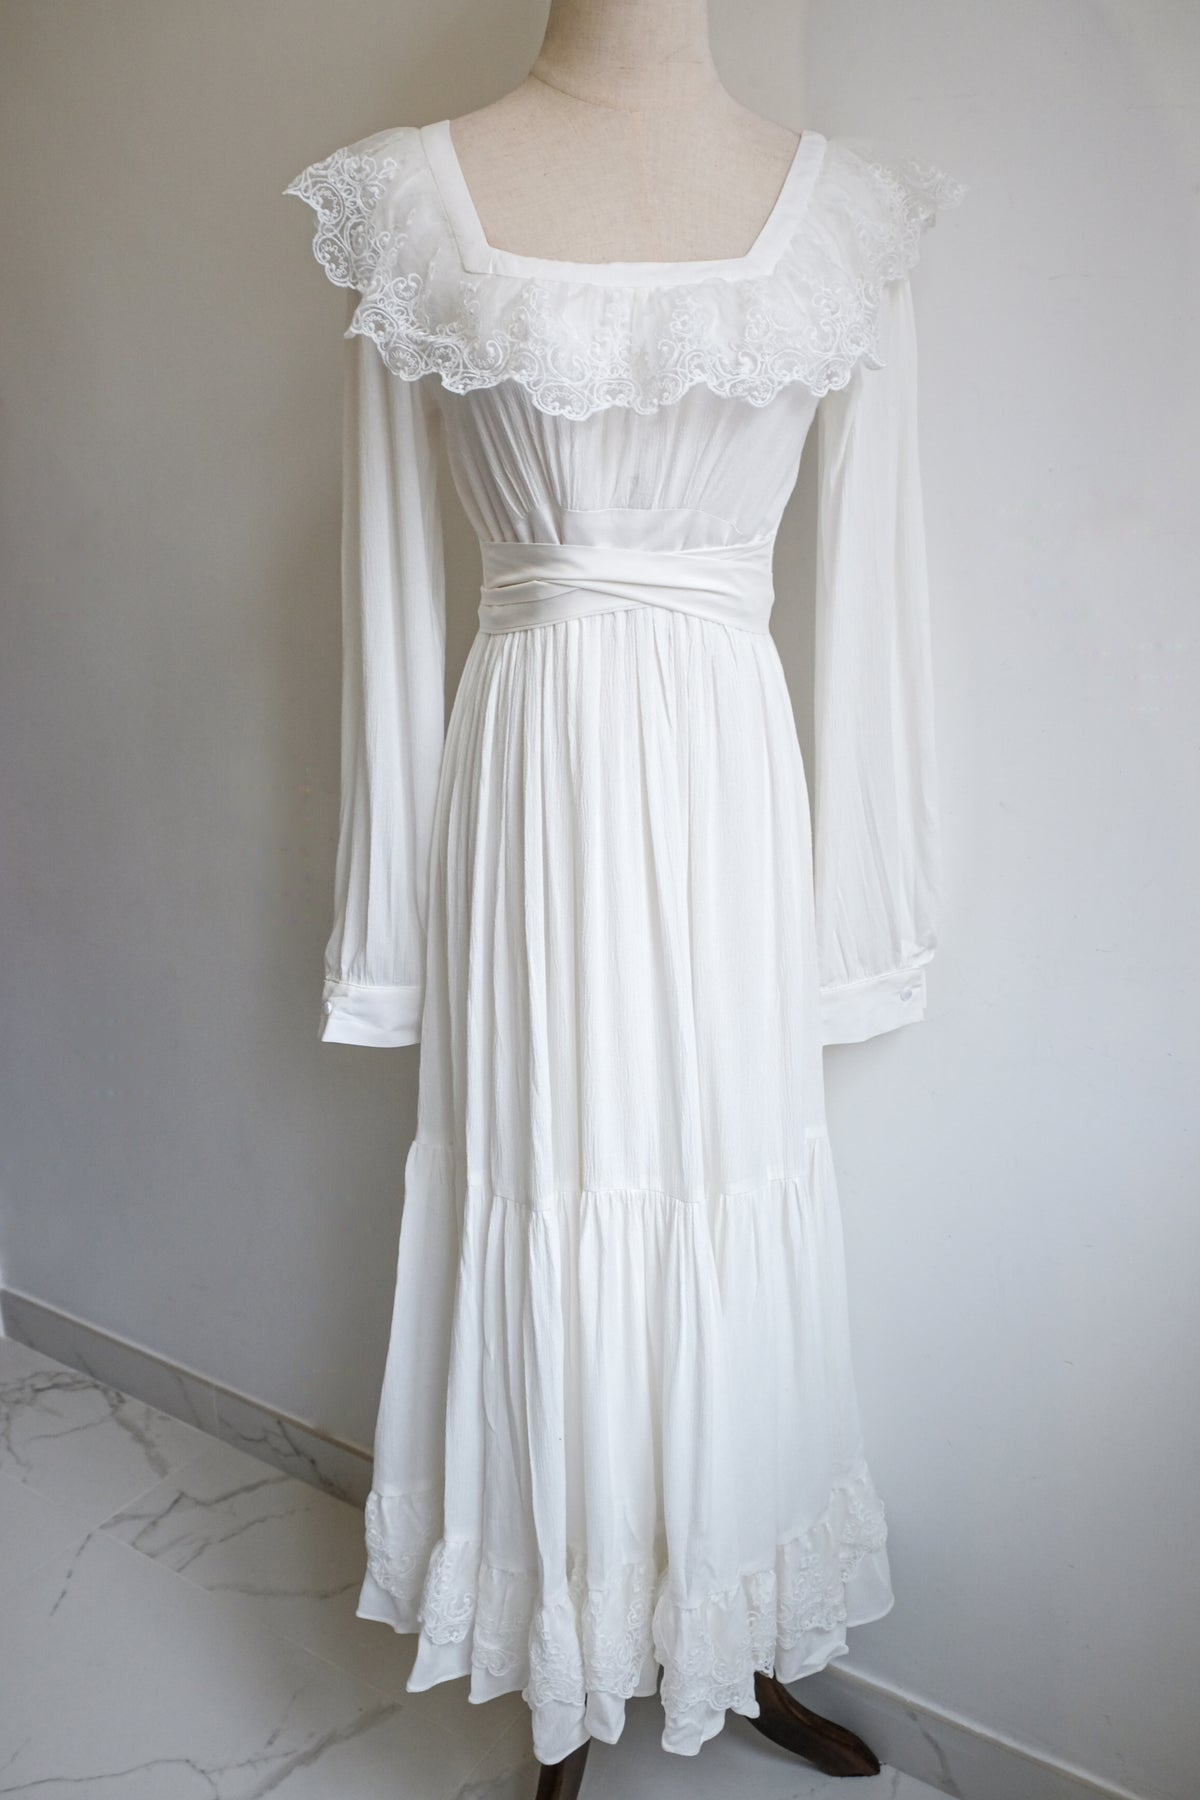 Image of SAMPLE SALE - Isabelle Lace Ribbon Neckline Long Dress White In Long Sleeves Version